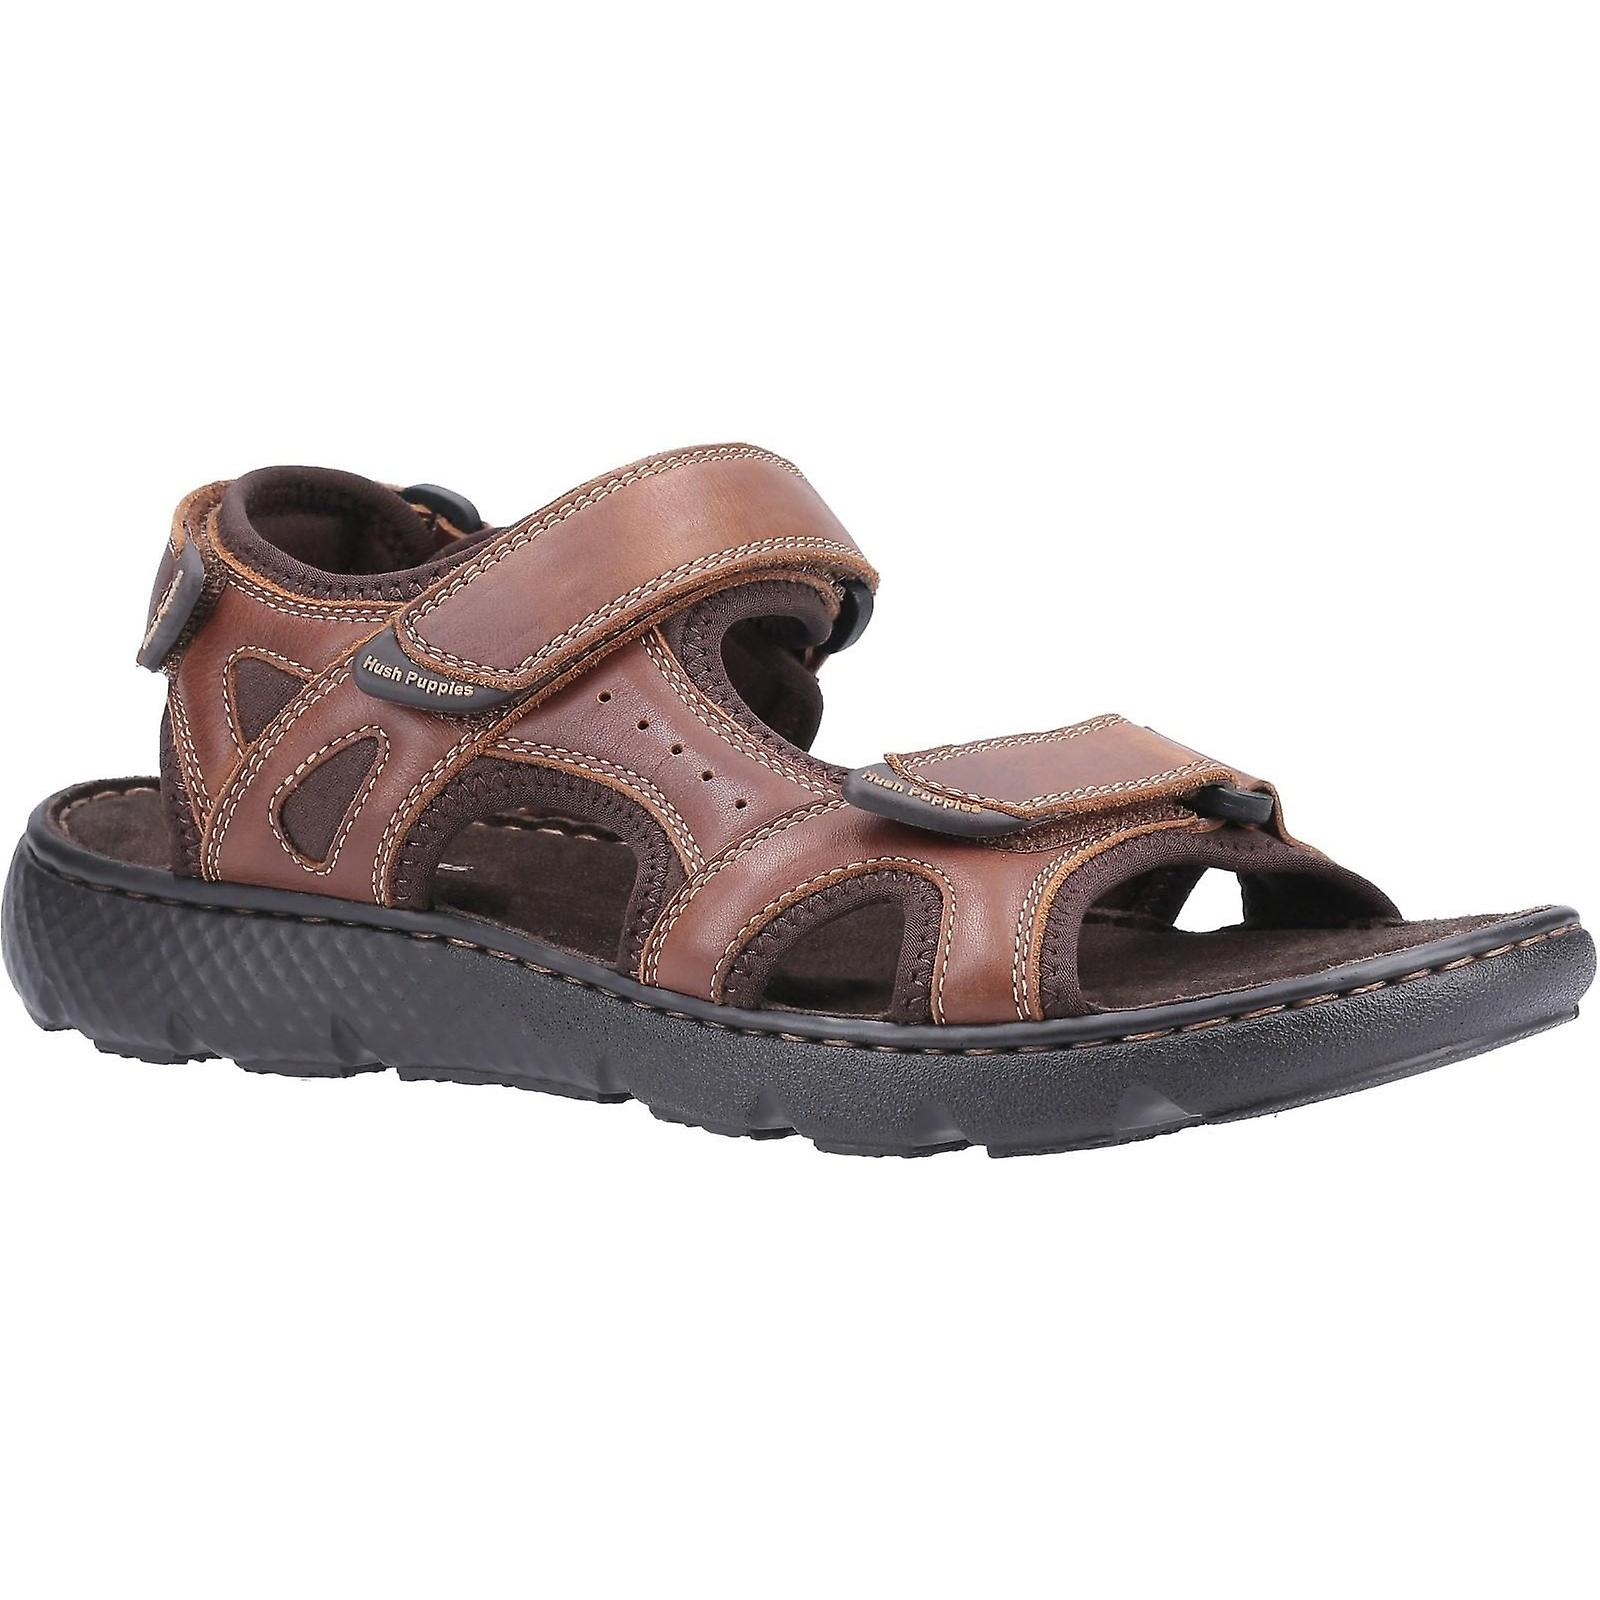 Sandale Hush Puppies Mens Carter Leather Strap